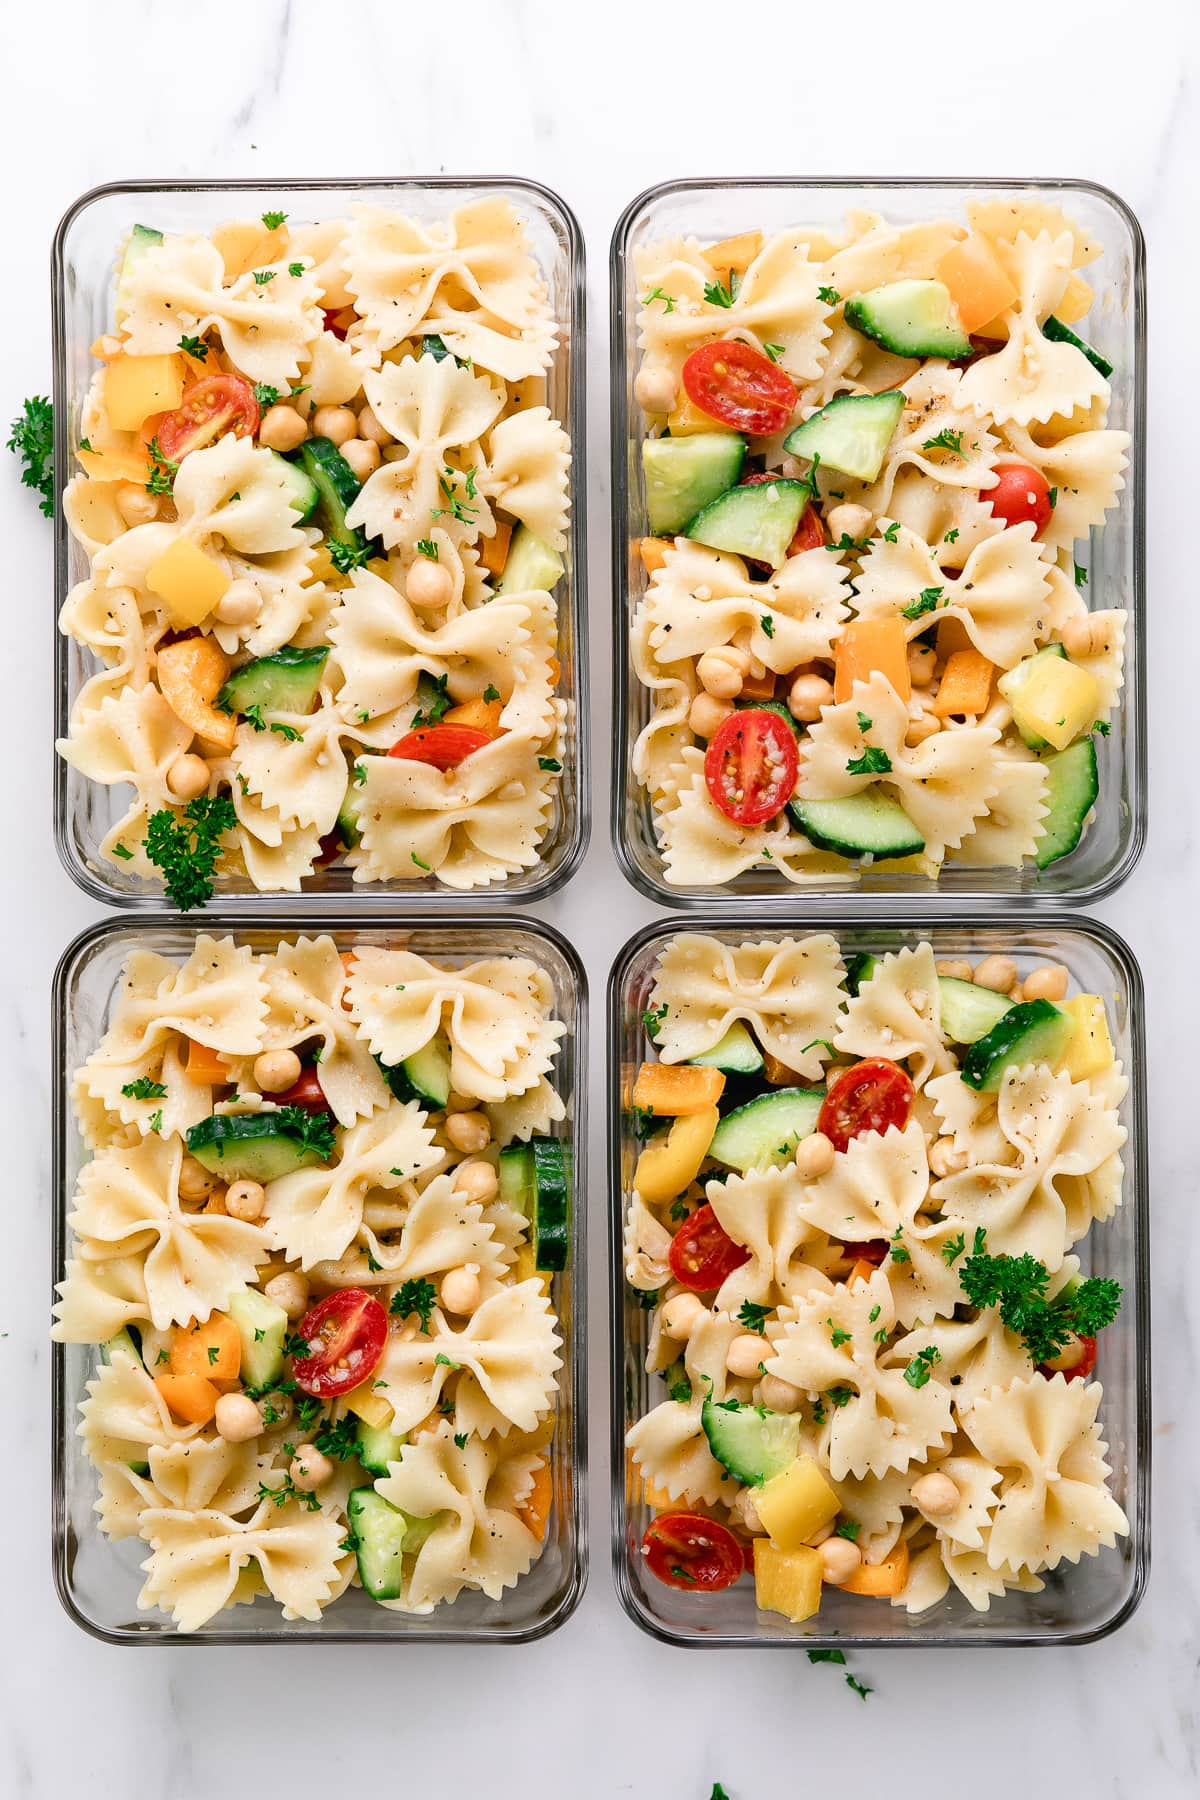 top down view of meal prepped vegetable pasta in glass containers.